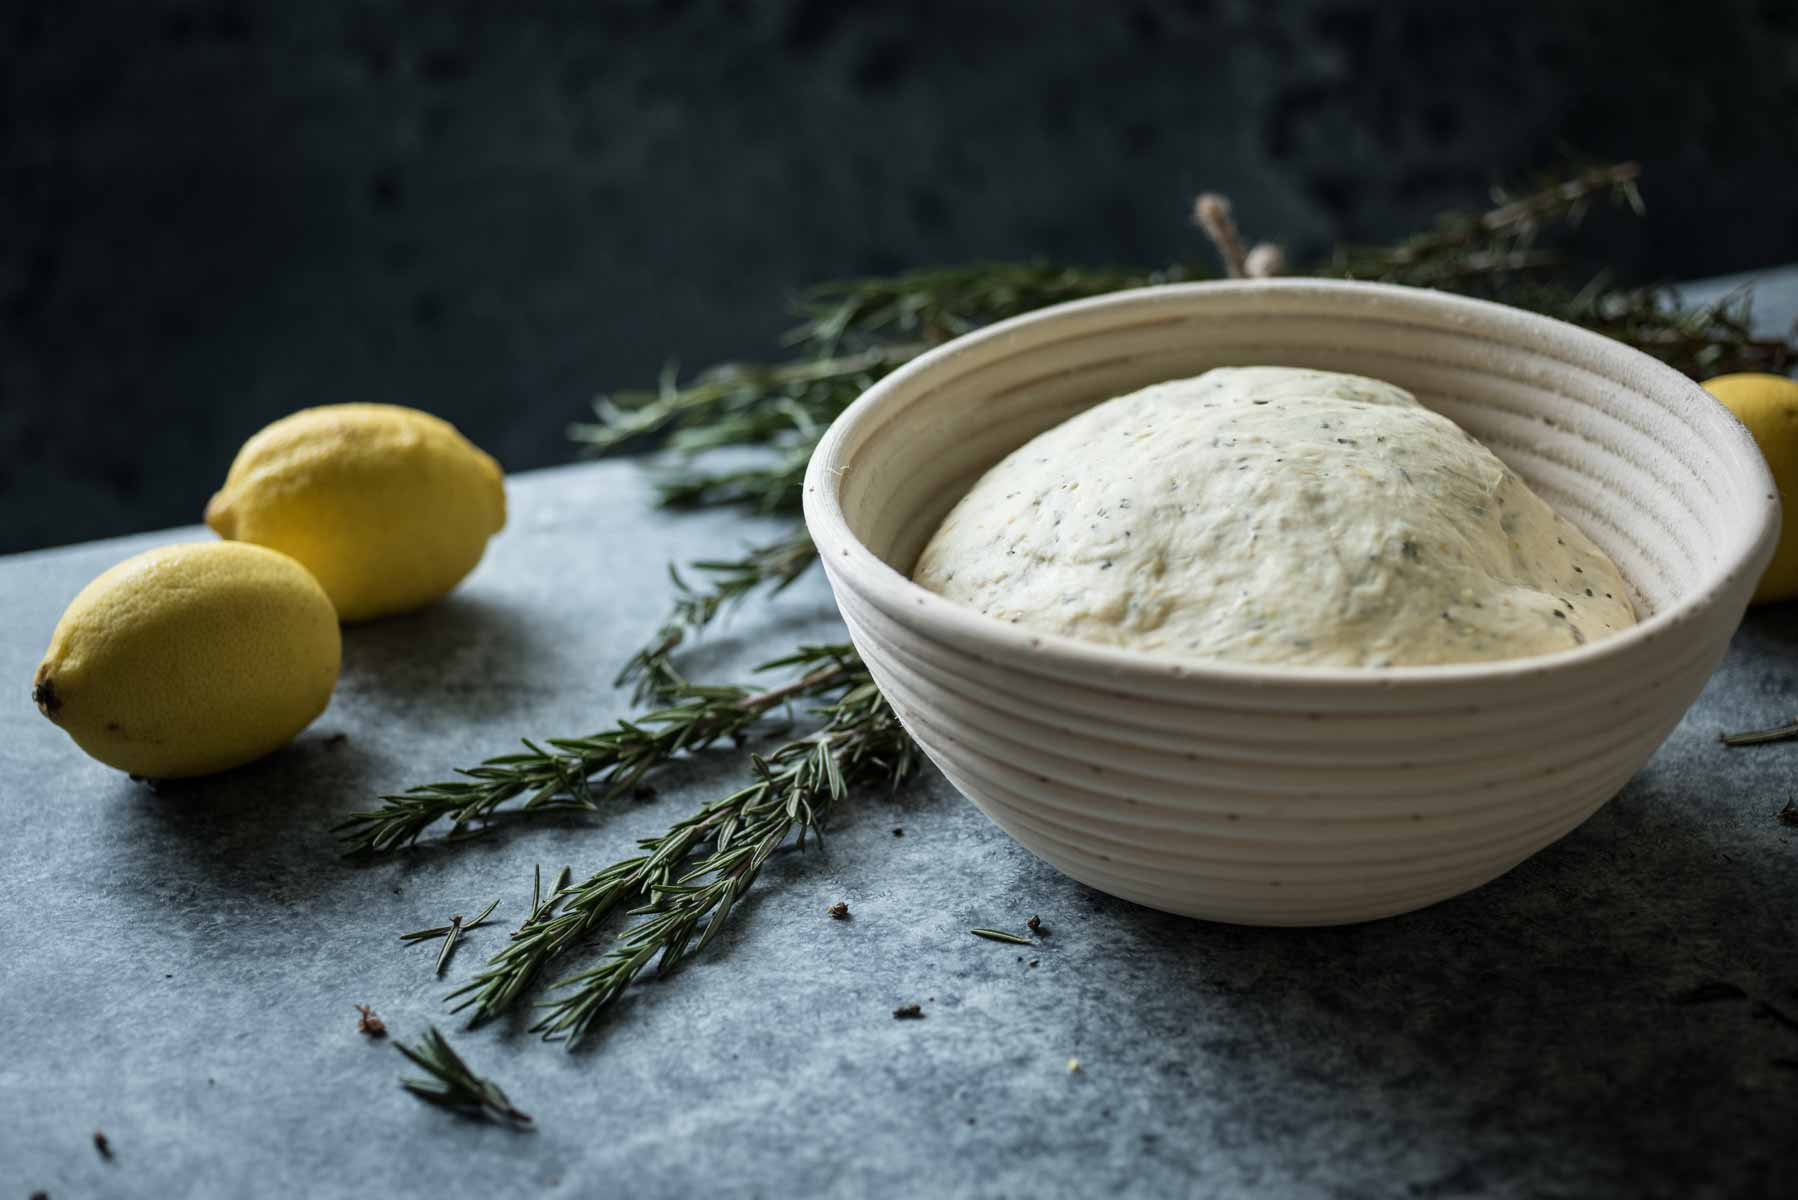 Homemade Lemon and Rosemary Bread | Chew Town Food Blog